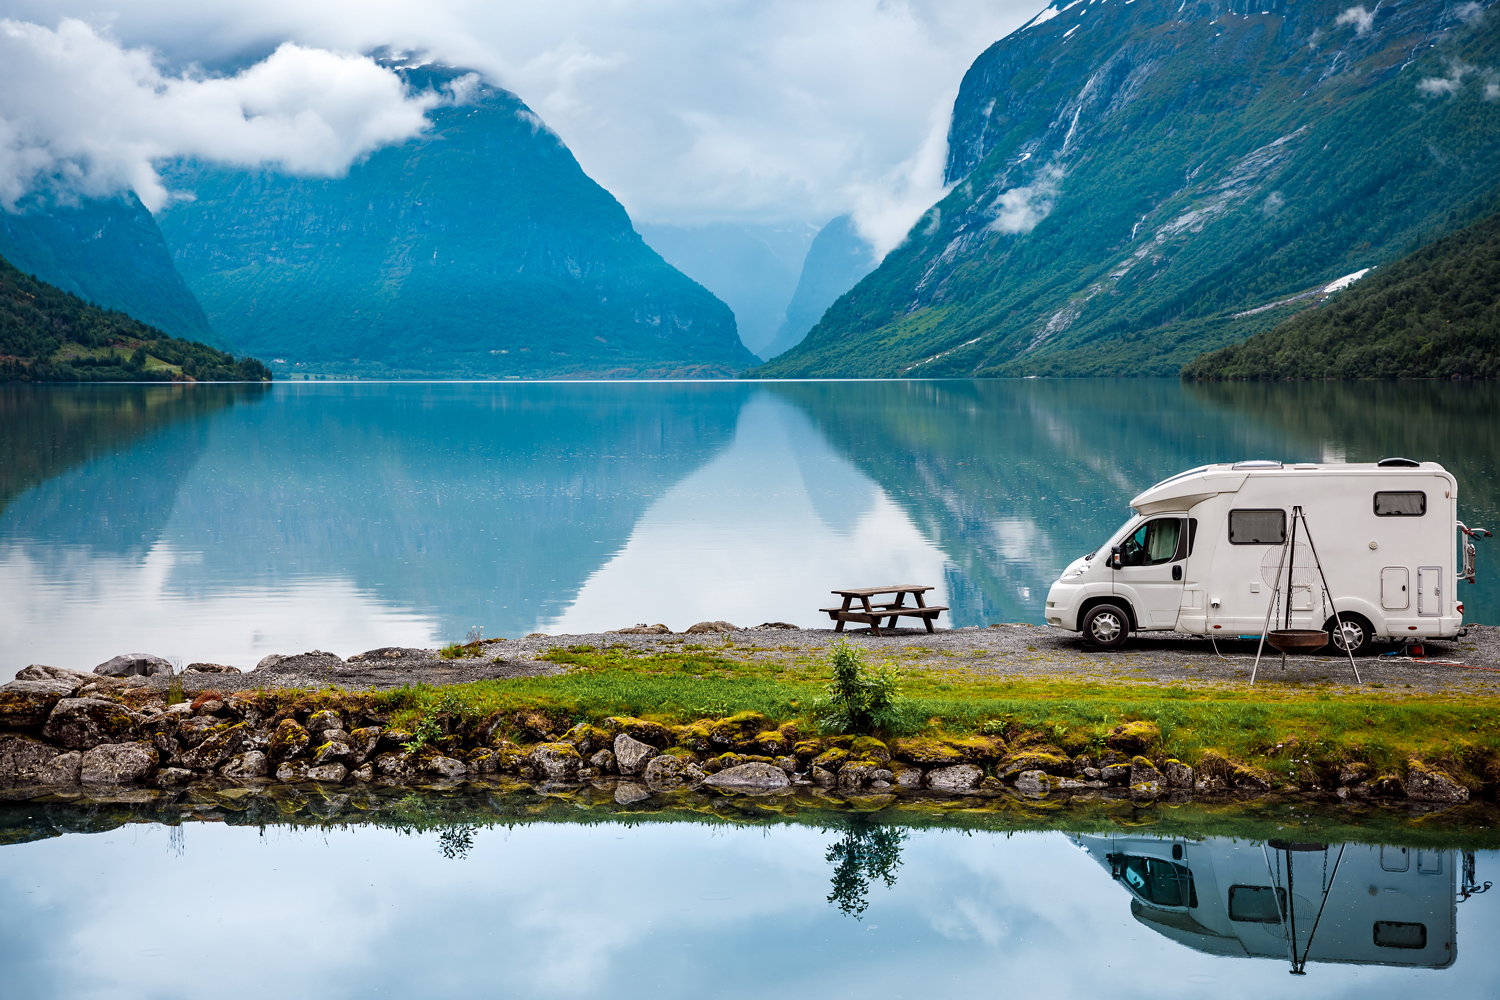 An RV is parked near a picnic table overlooking mountains and a beautiful lake.